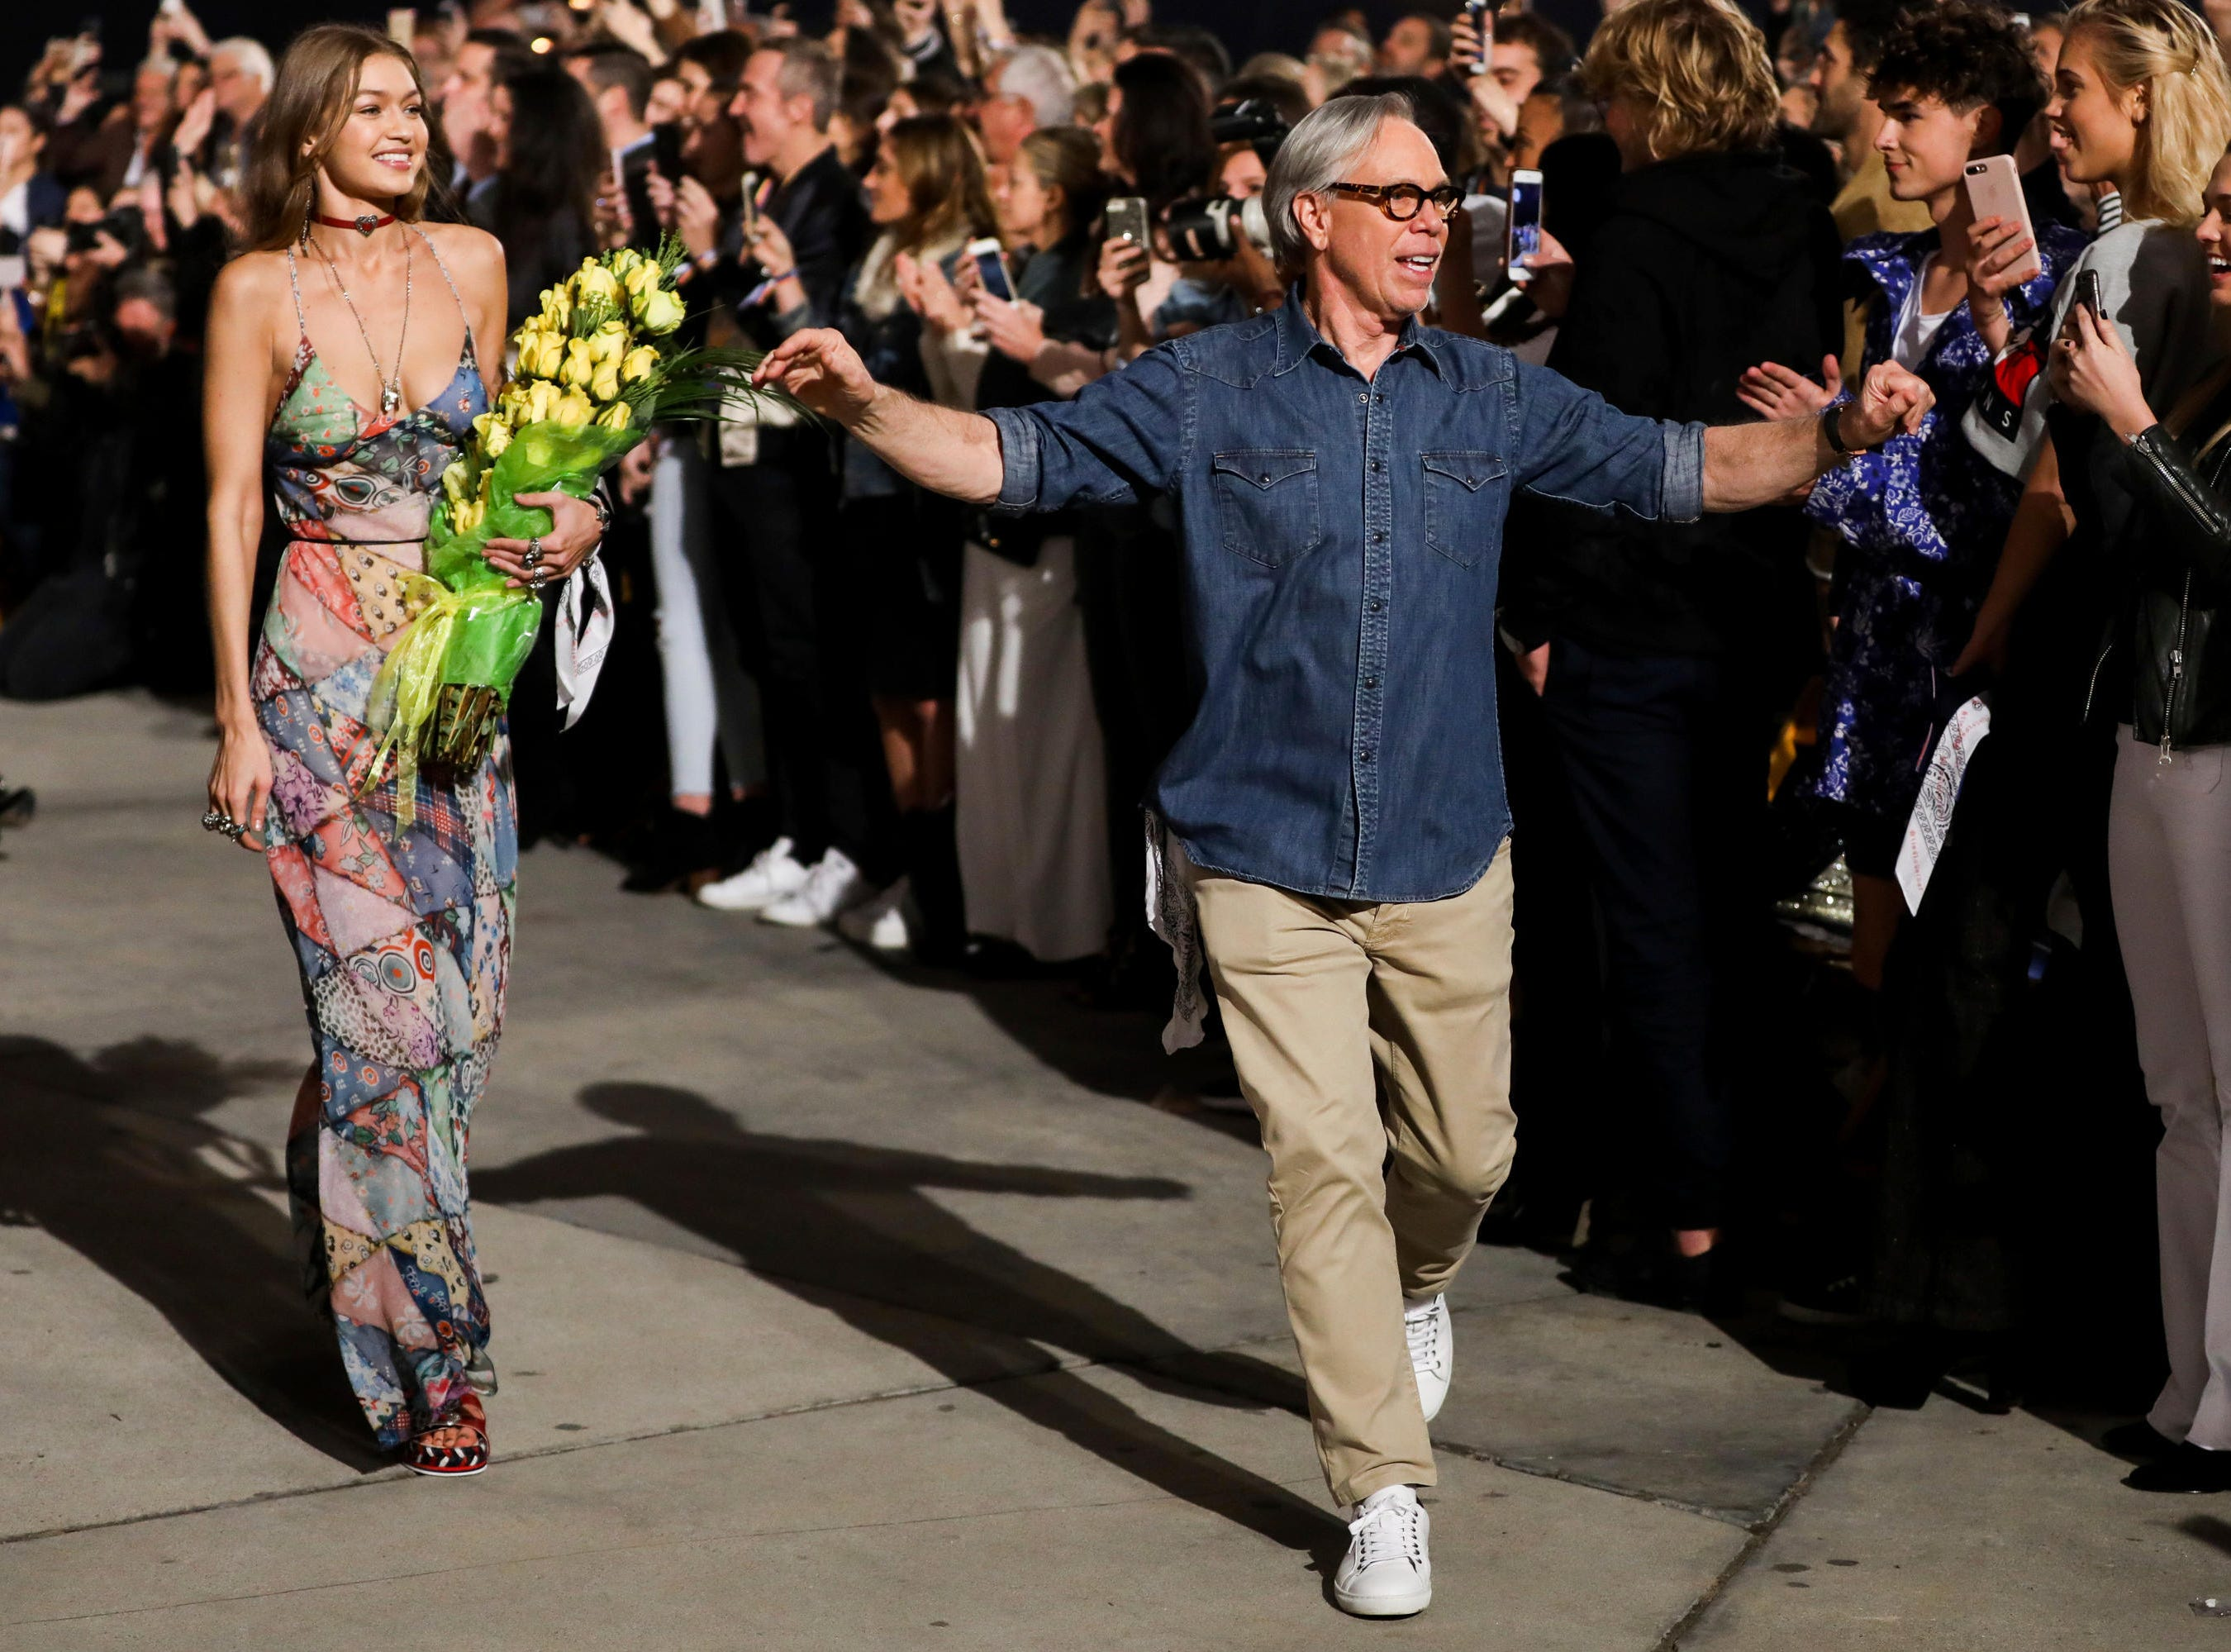 Tommy Hilfiger, a native of Elmira, walks the runway at the Tommy Hilfiger TommyxGigi Runway Show at Venice Beach on Wednesday, Feb. 8, 2017 in Los Angeles.